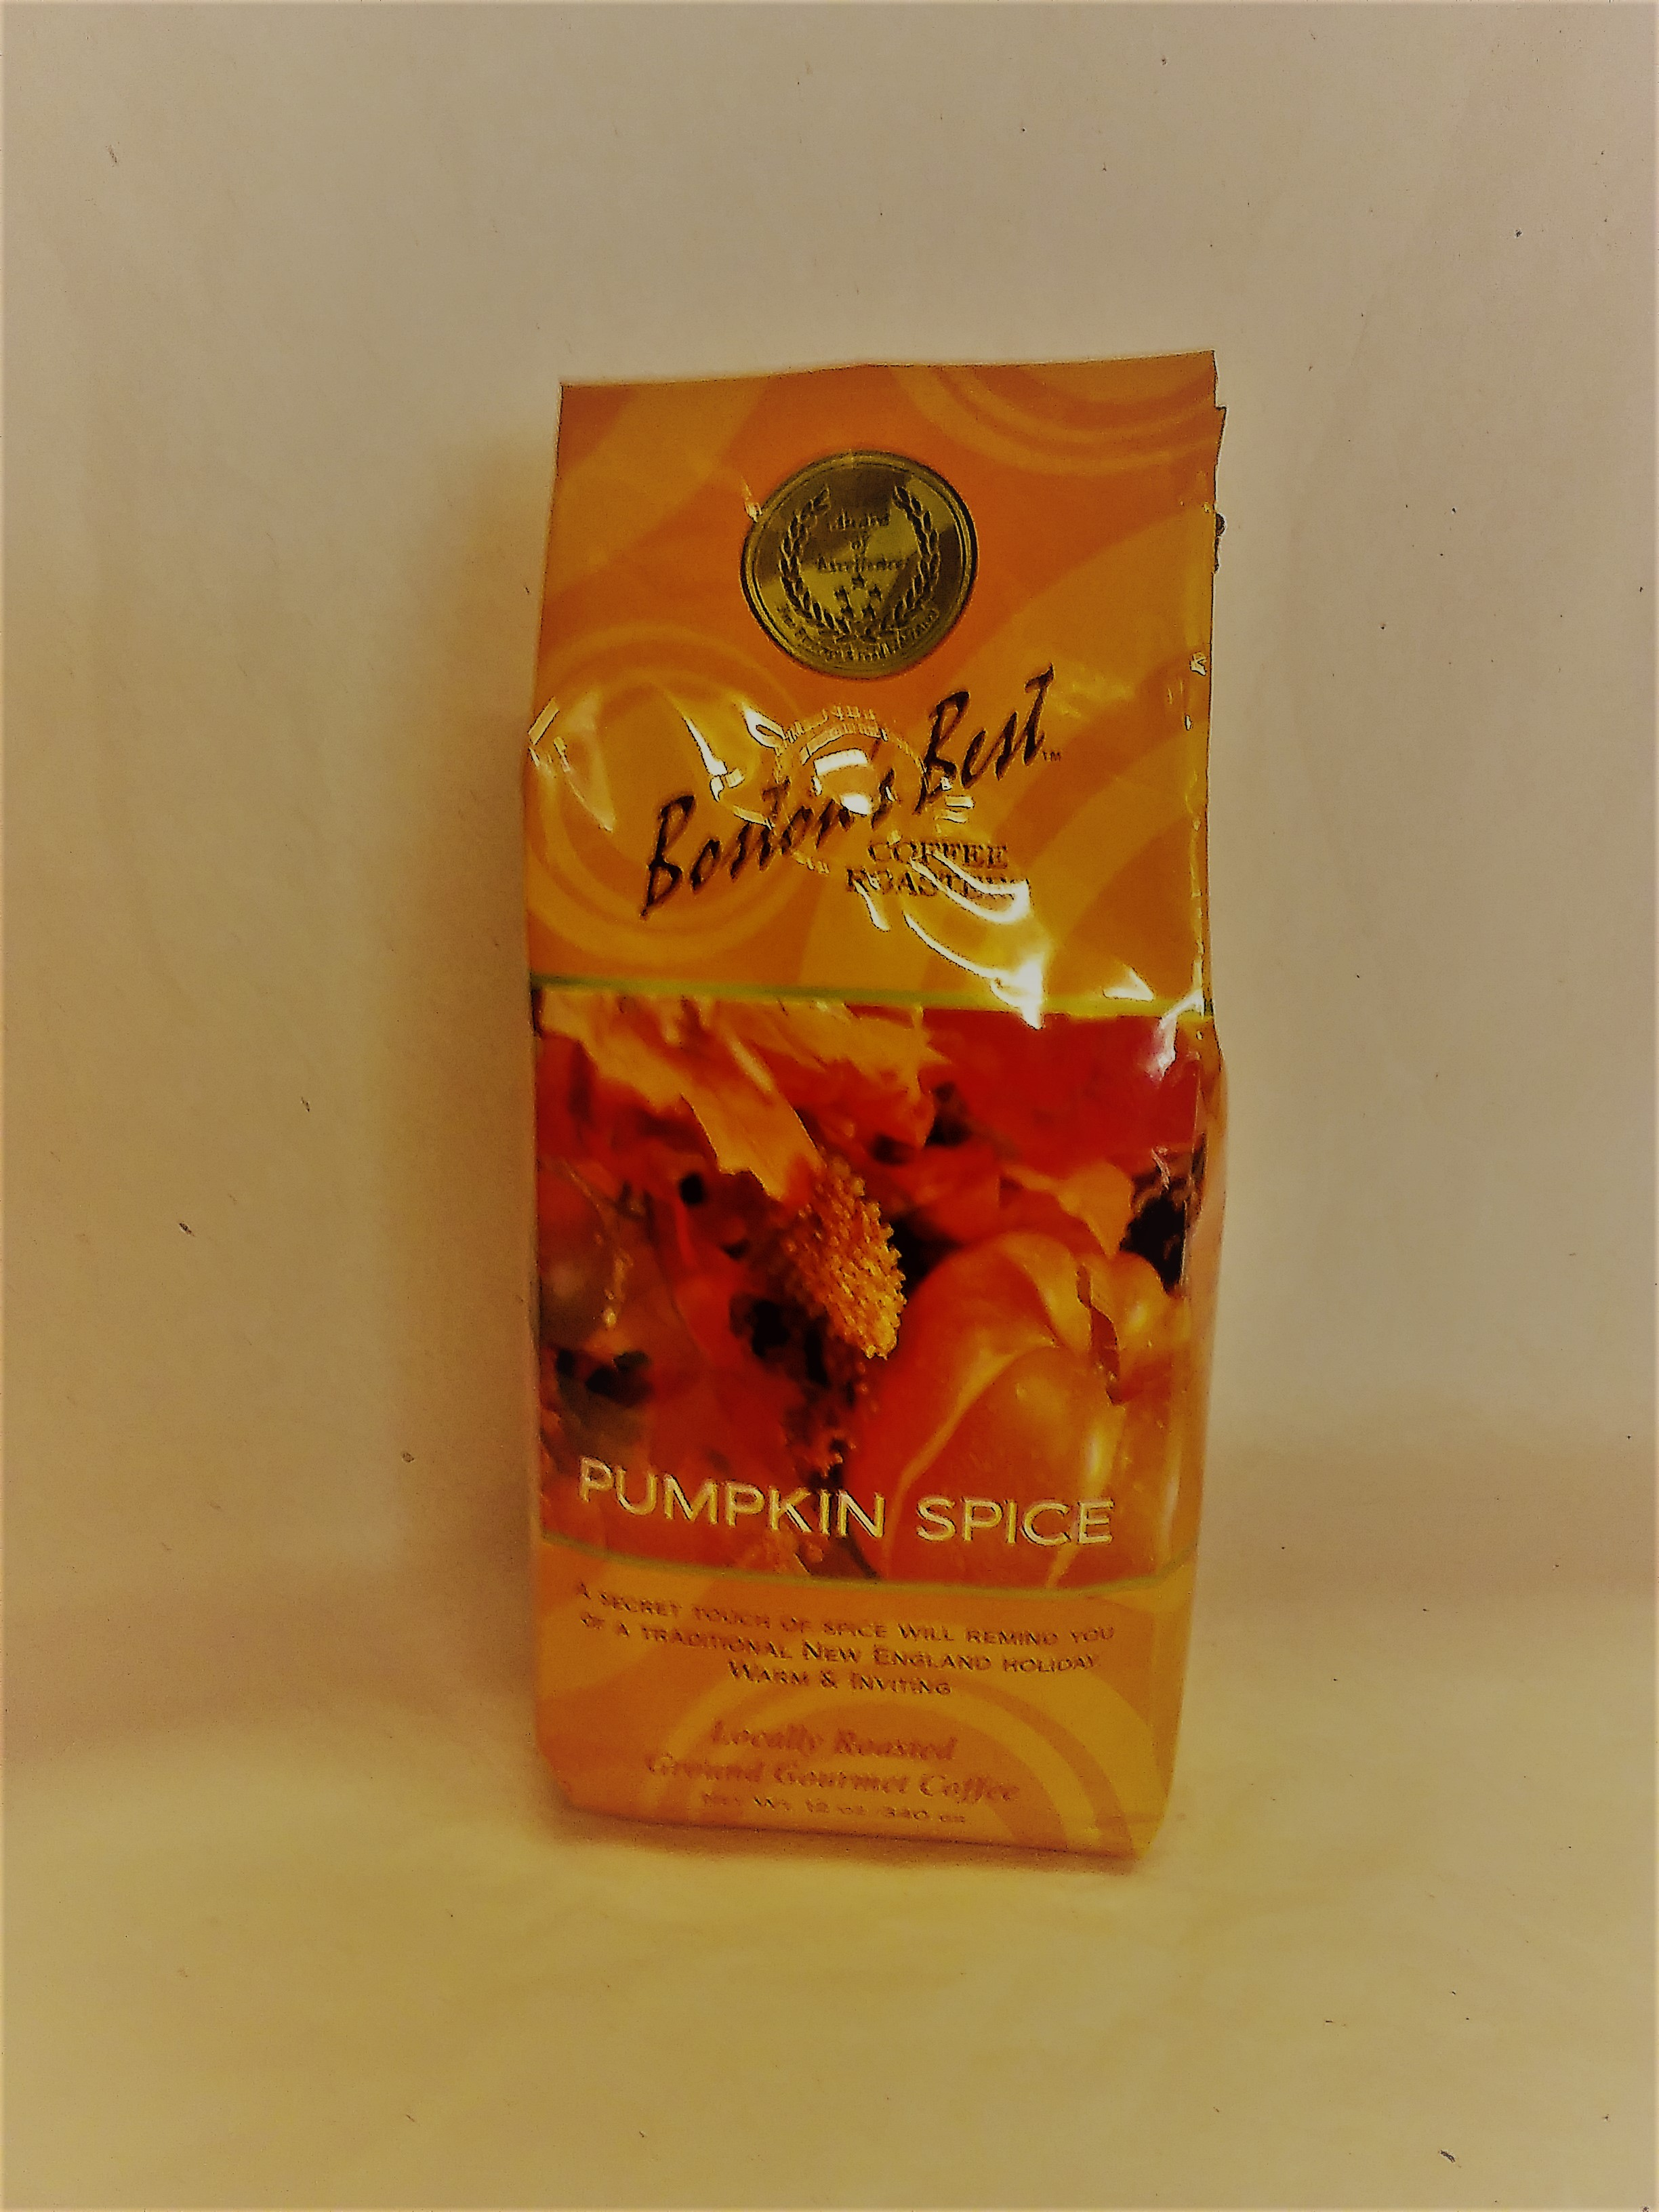 Pumpkin Spice Ground Coffee